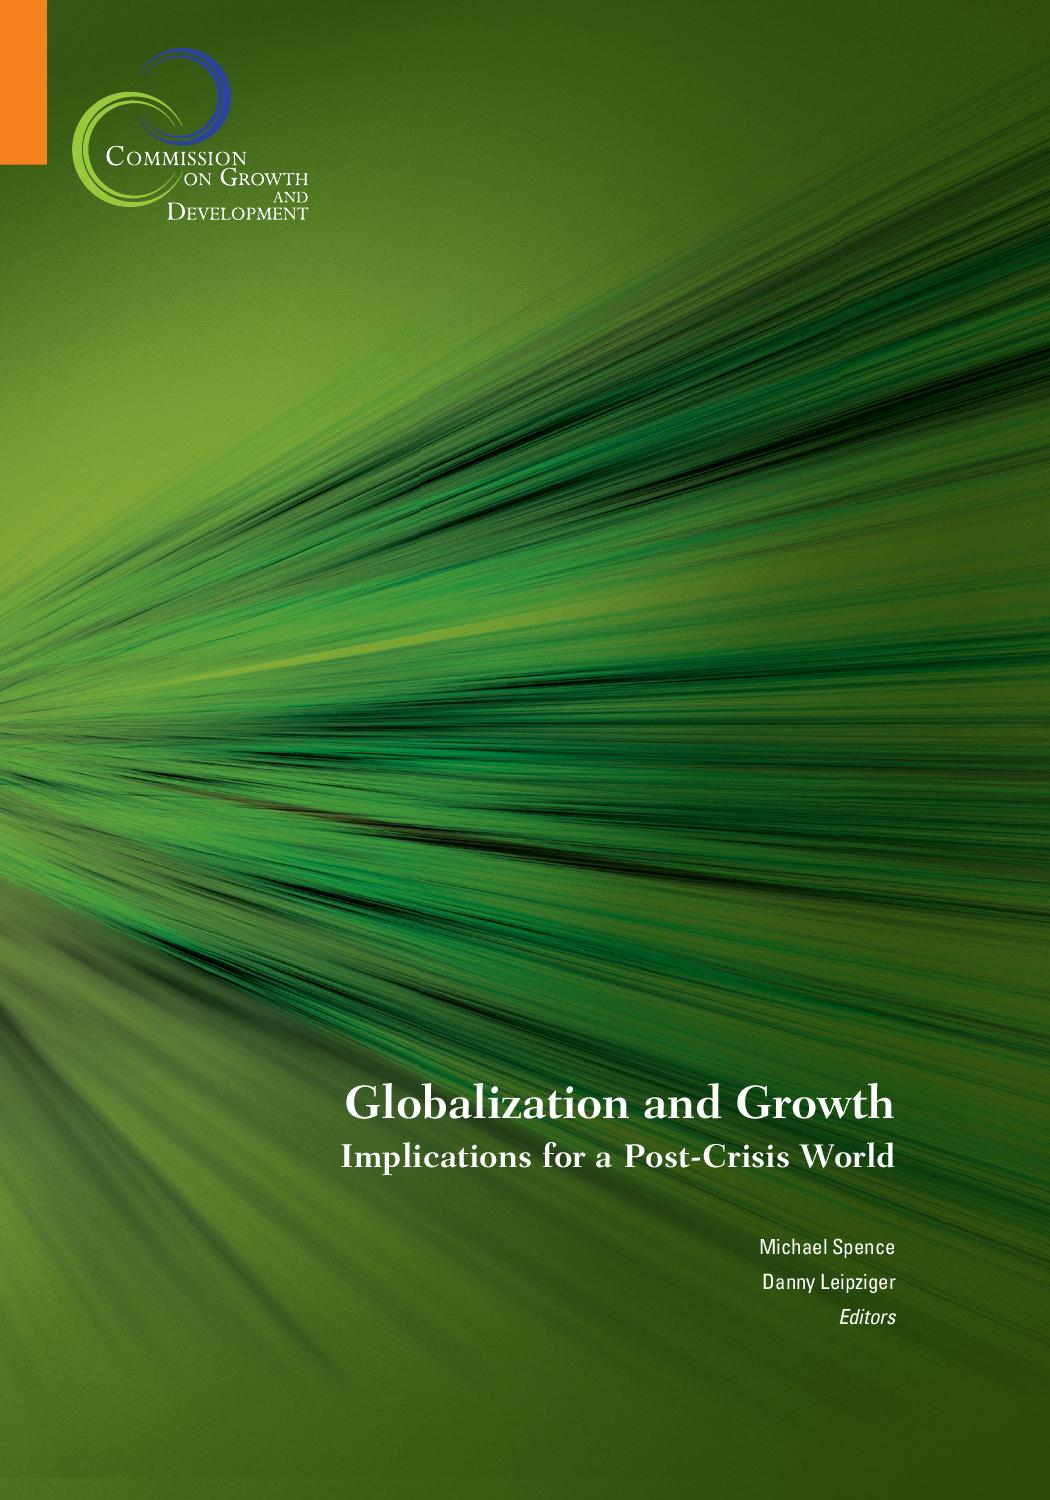 a955182cec9 Globalization and Growth by World Bank Publications - issuu